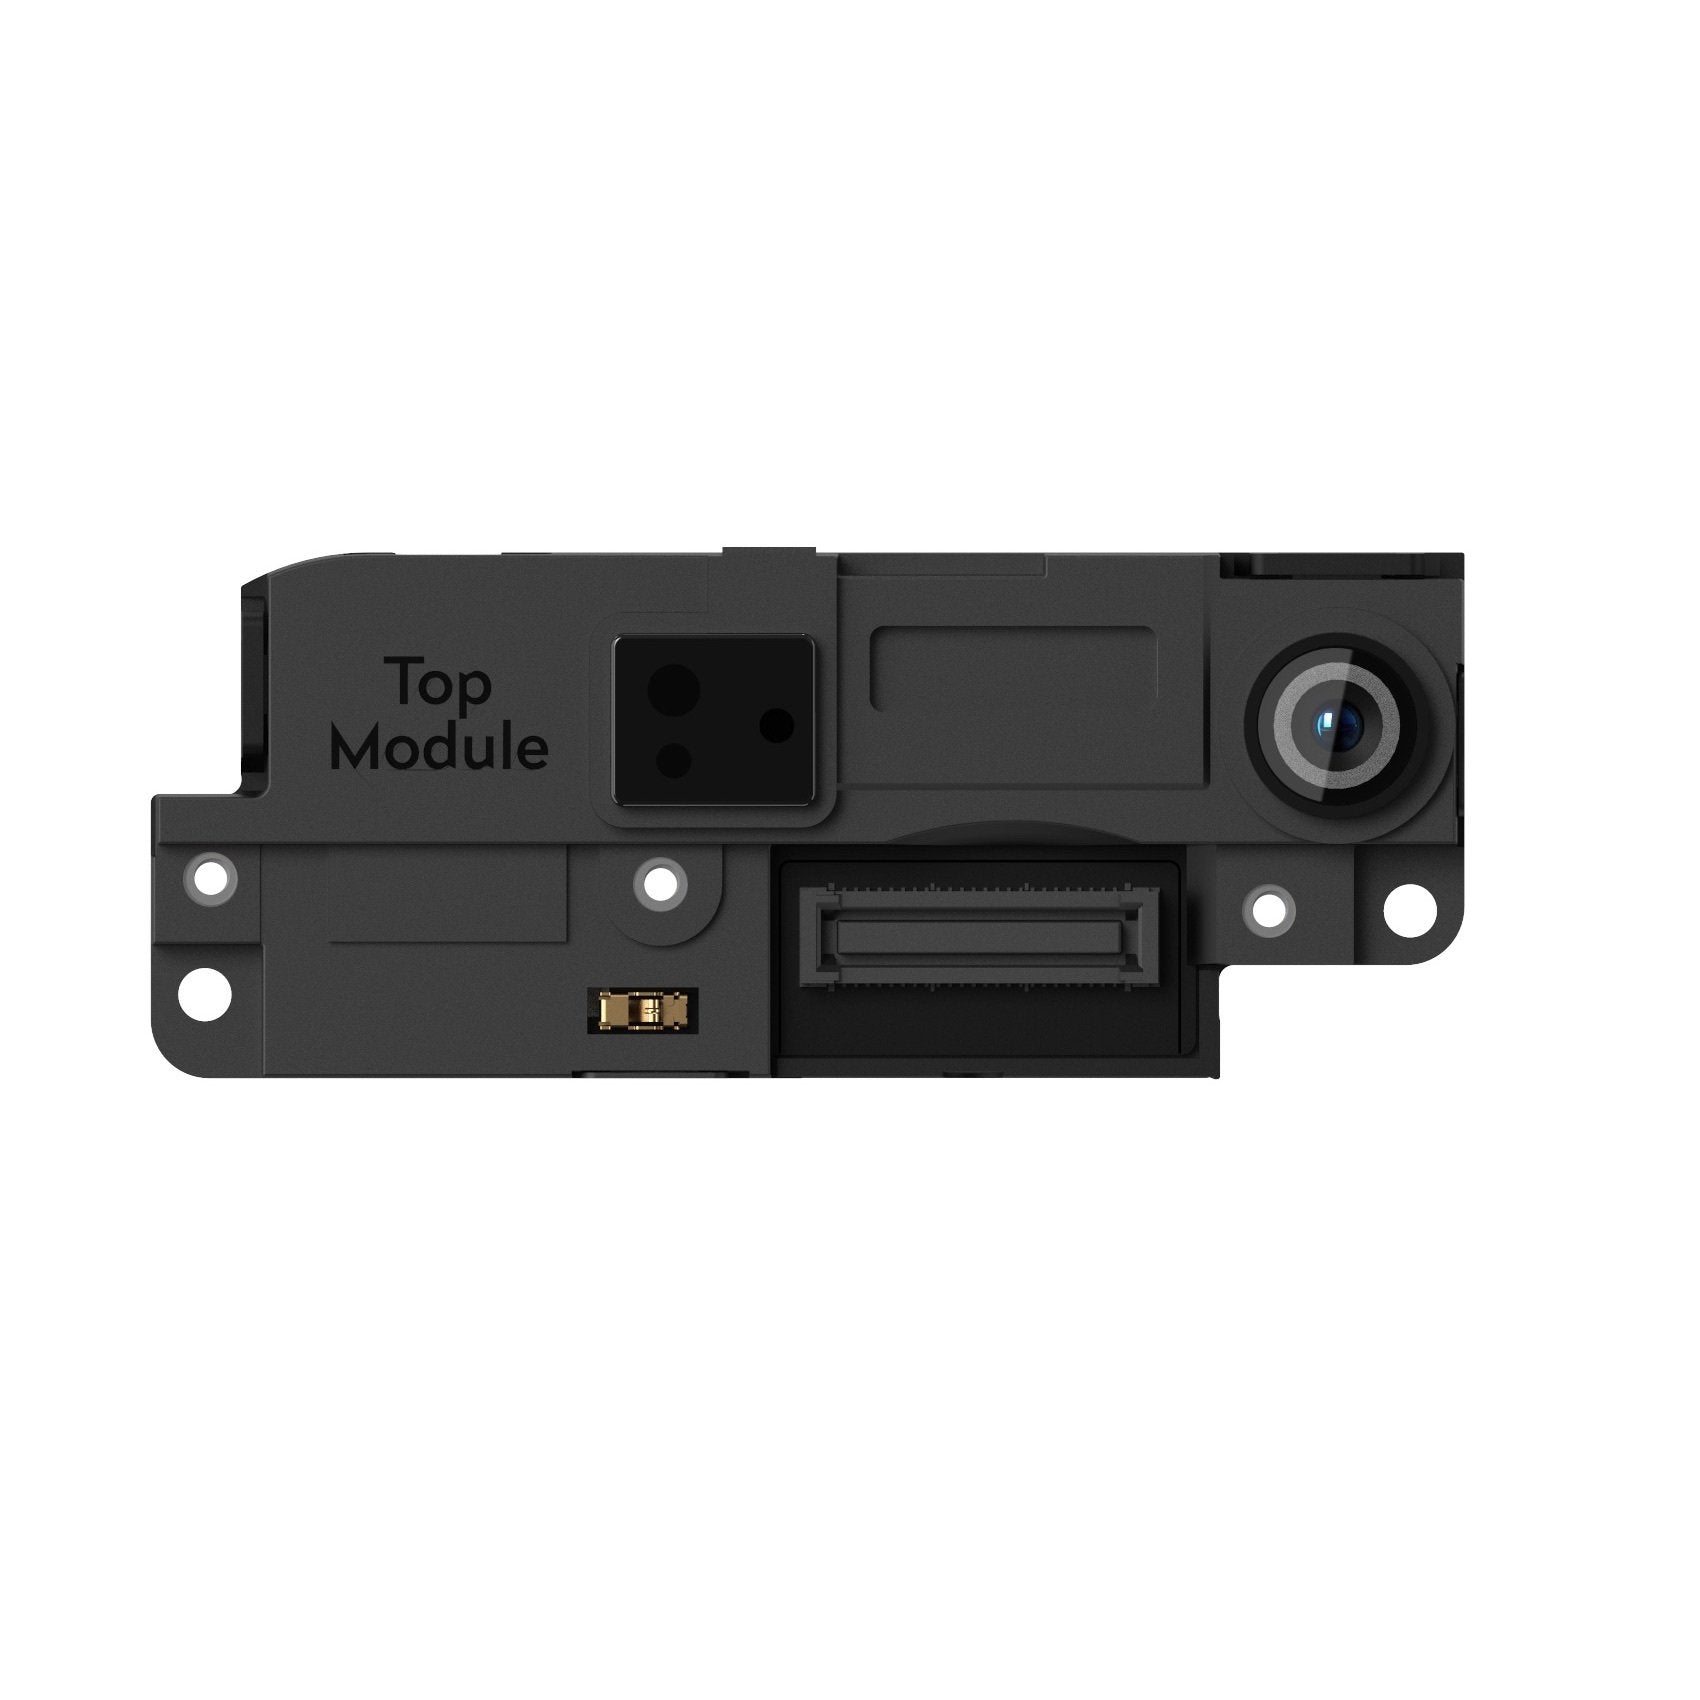 Le module Top+ pour Fairphone 3 / 3+